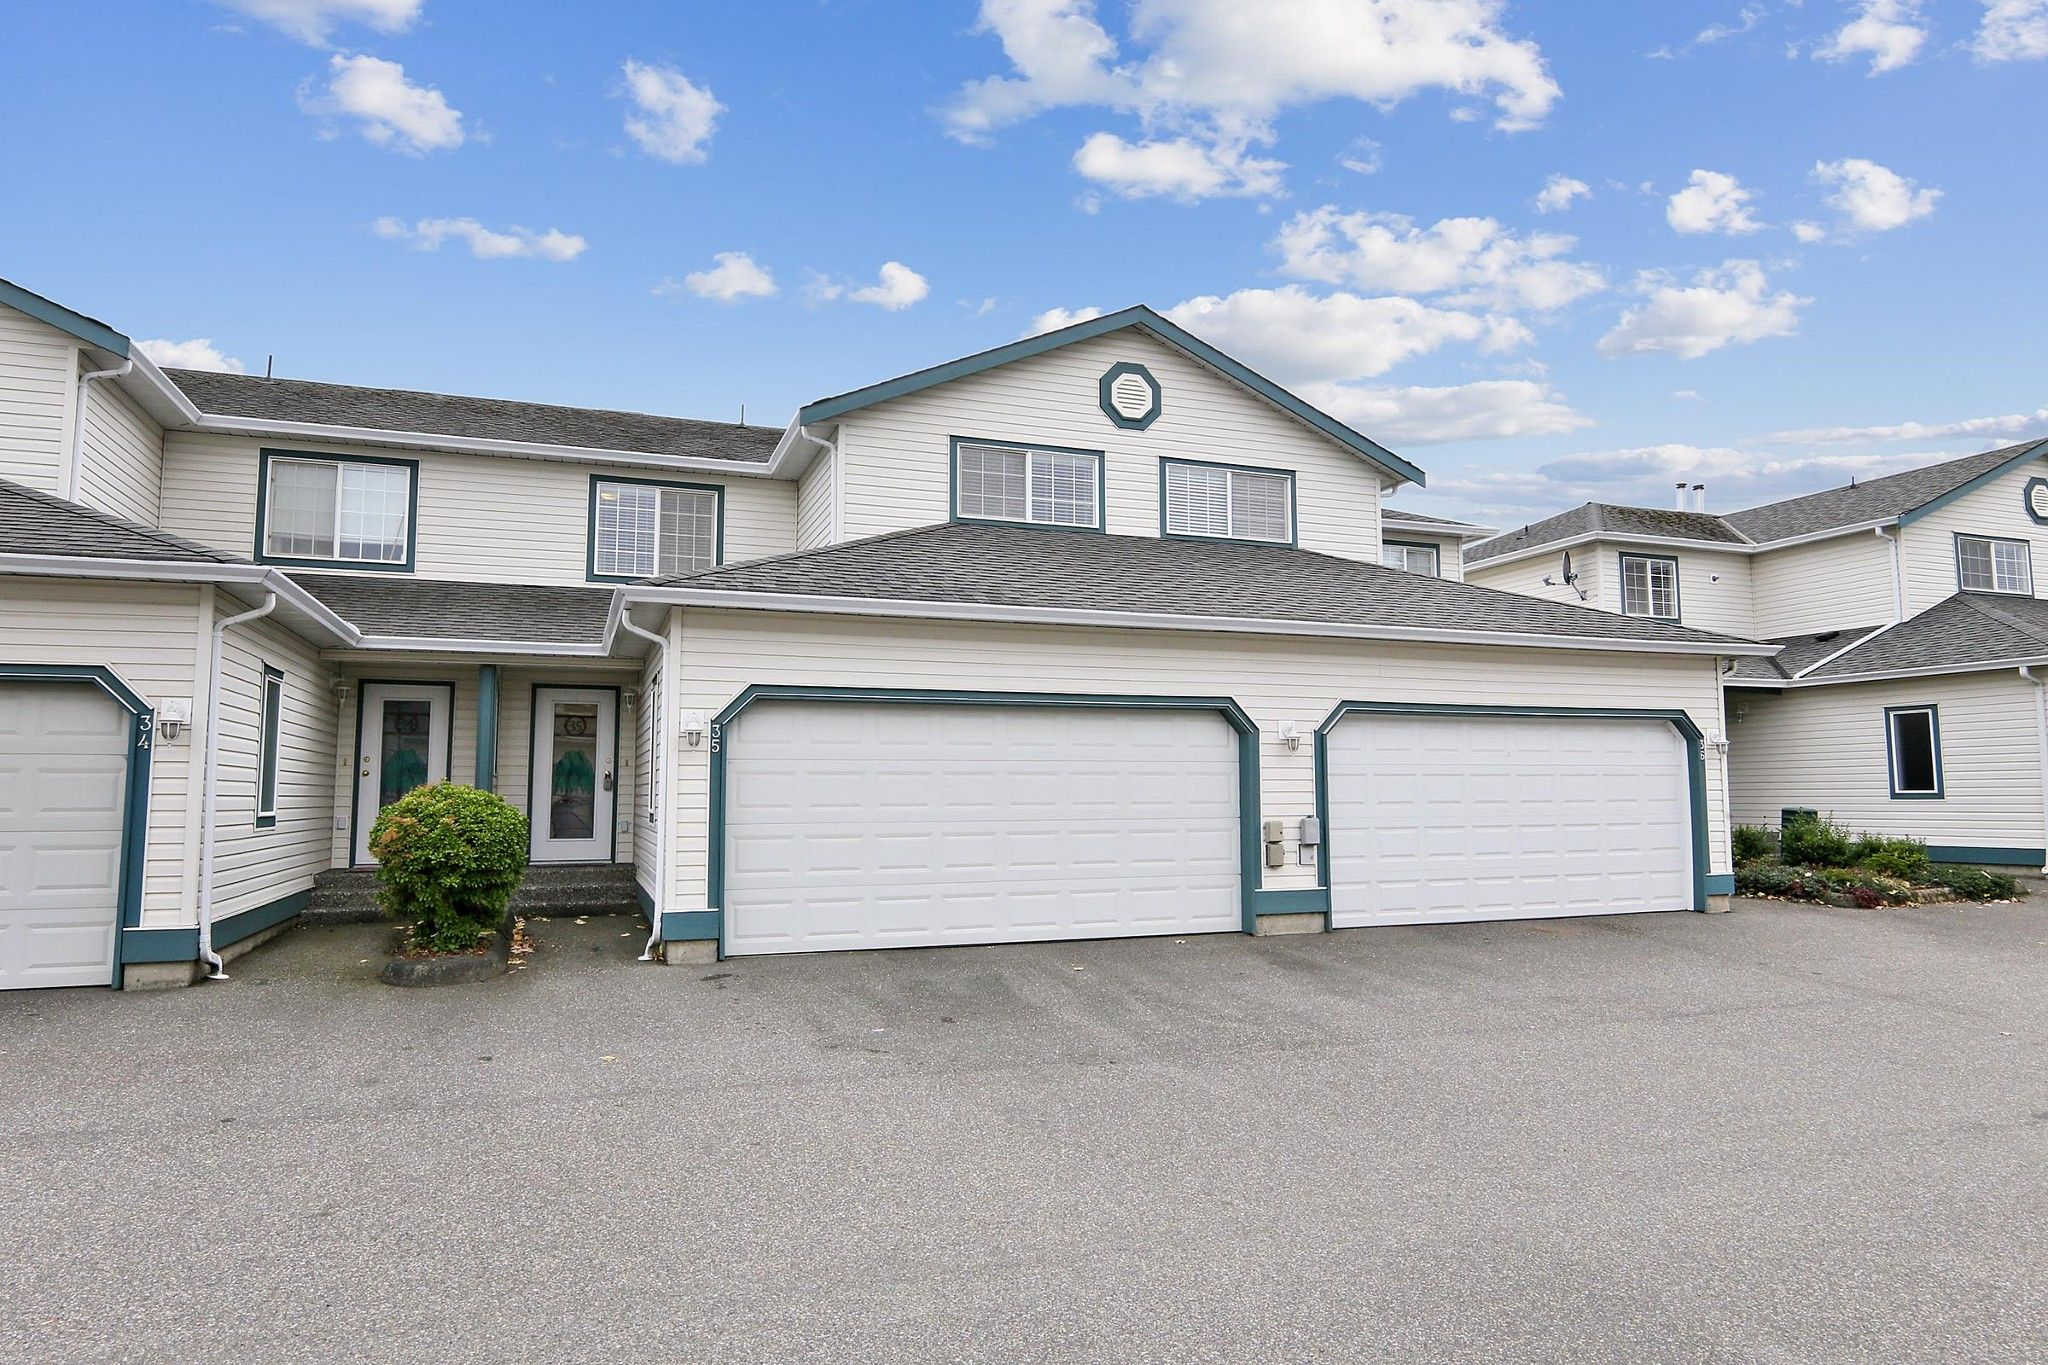 """Main Photo: 35 6434 VEDDER Road in Chilliwack: Sardis East Vedder Rd Townhouse for sale in """"Willow Lane"""" (Sardis)  : MLS®# R2625563"""